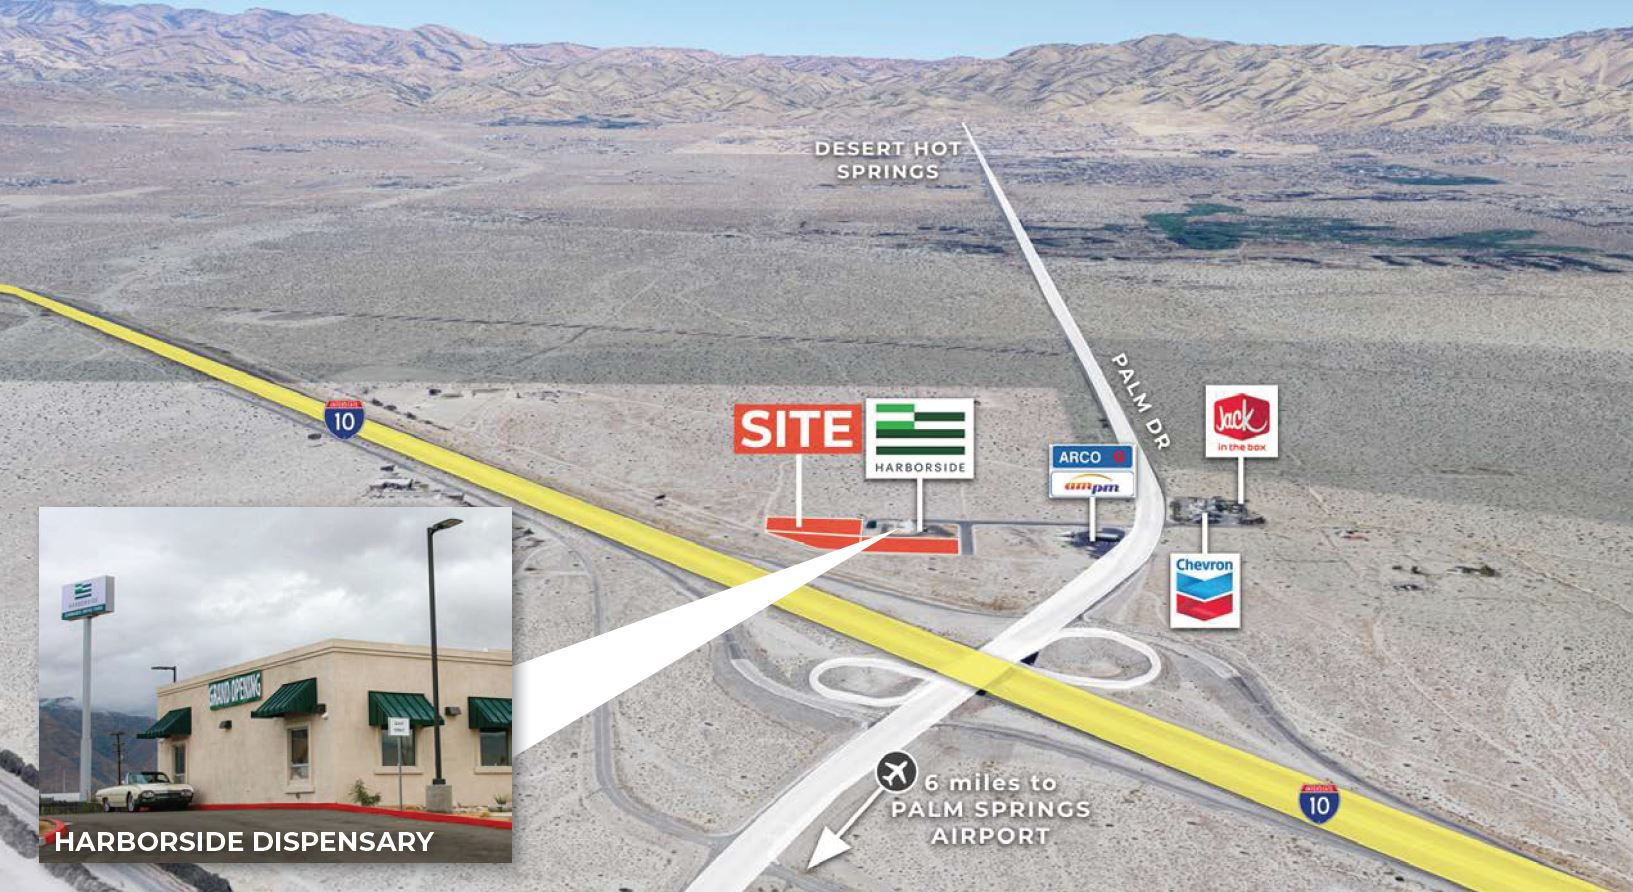 aerial image of 1.06-3.39 ac highway commercial for sale at desert hot springs california